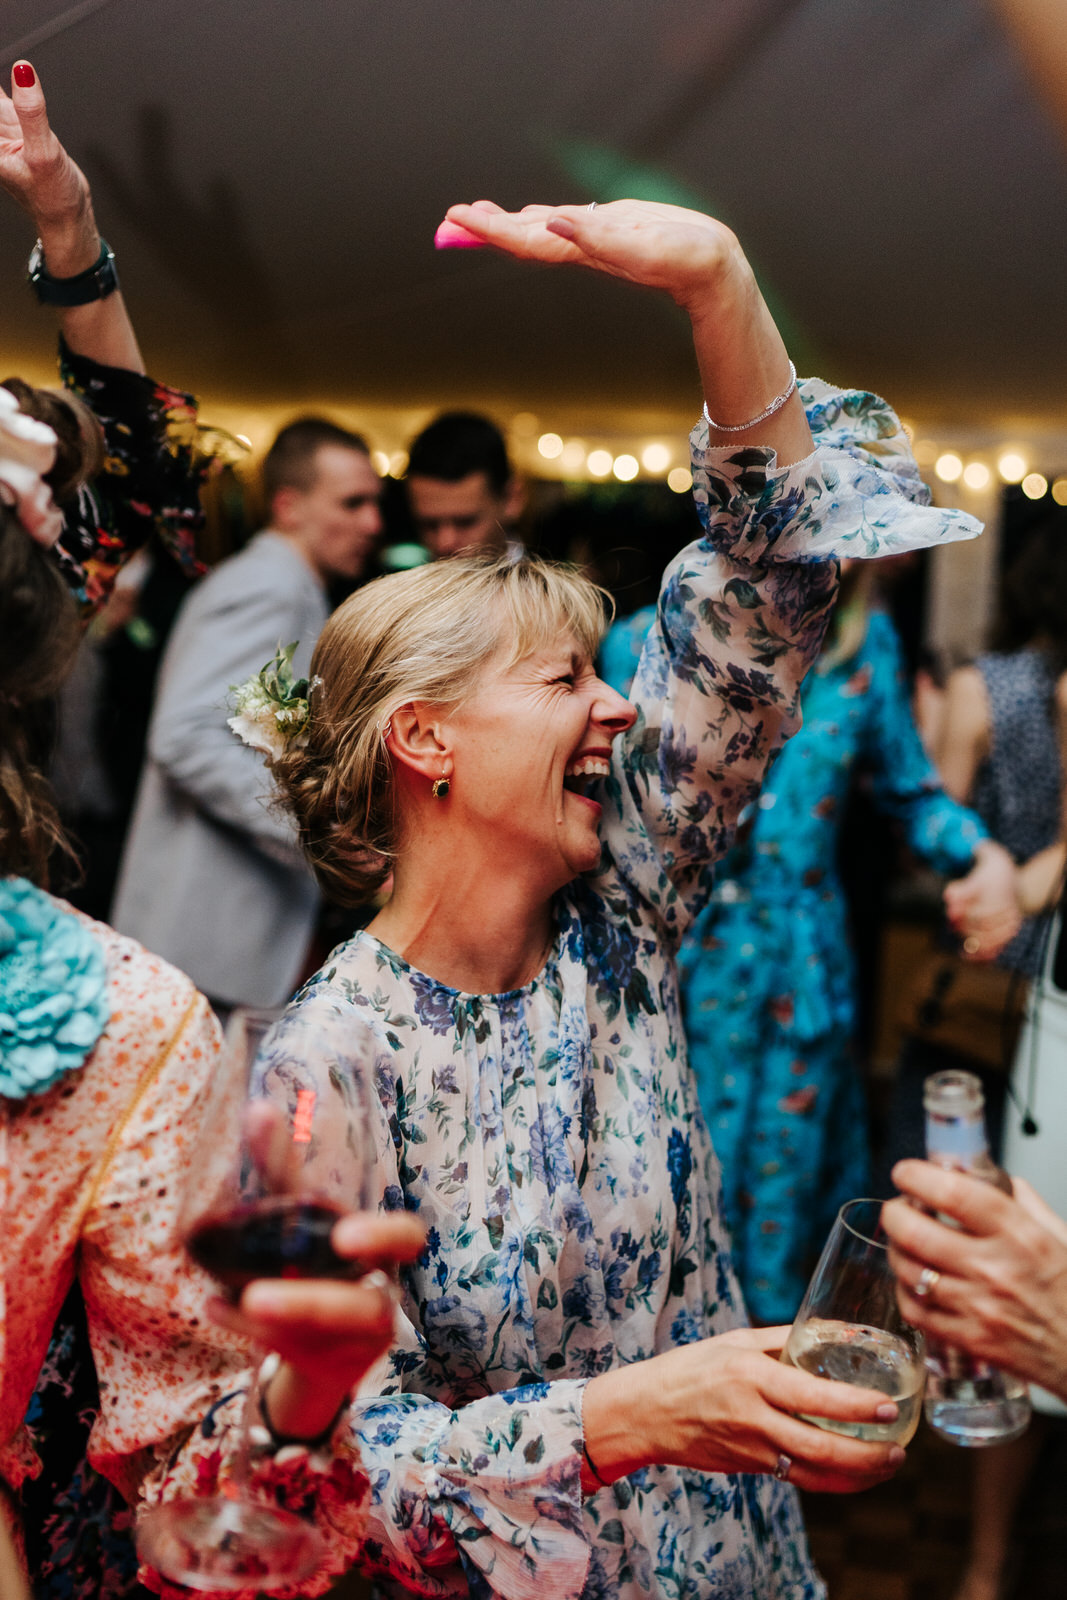 Mother of the bride having the time of her life on the dancefloor smiling and throwing her hand in the air